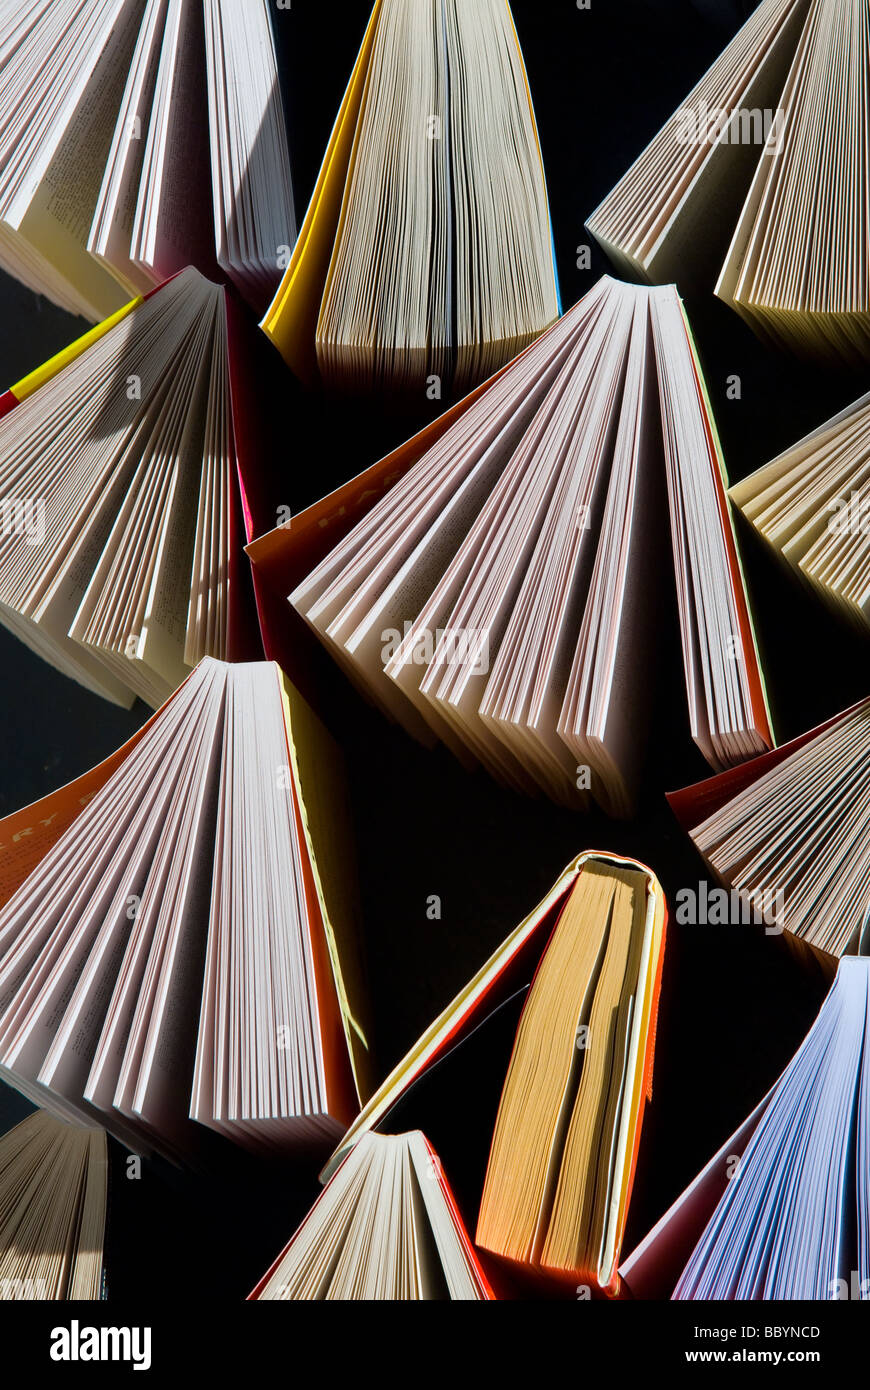 photograph of fanned out books with open pages - Stock Image